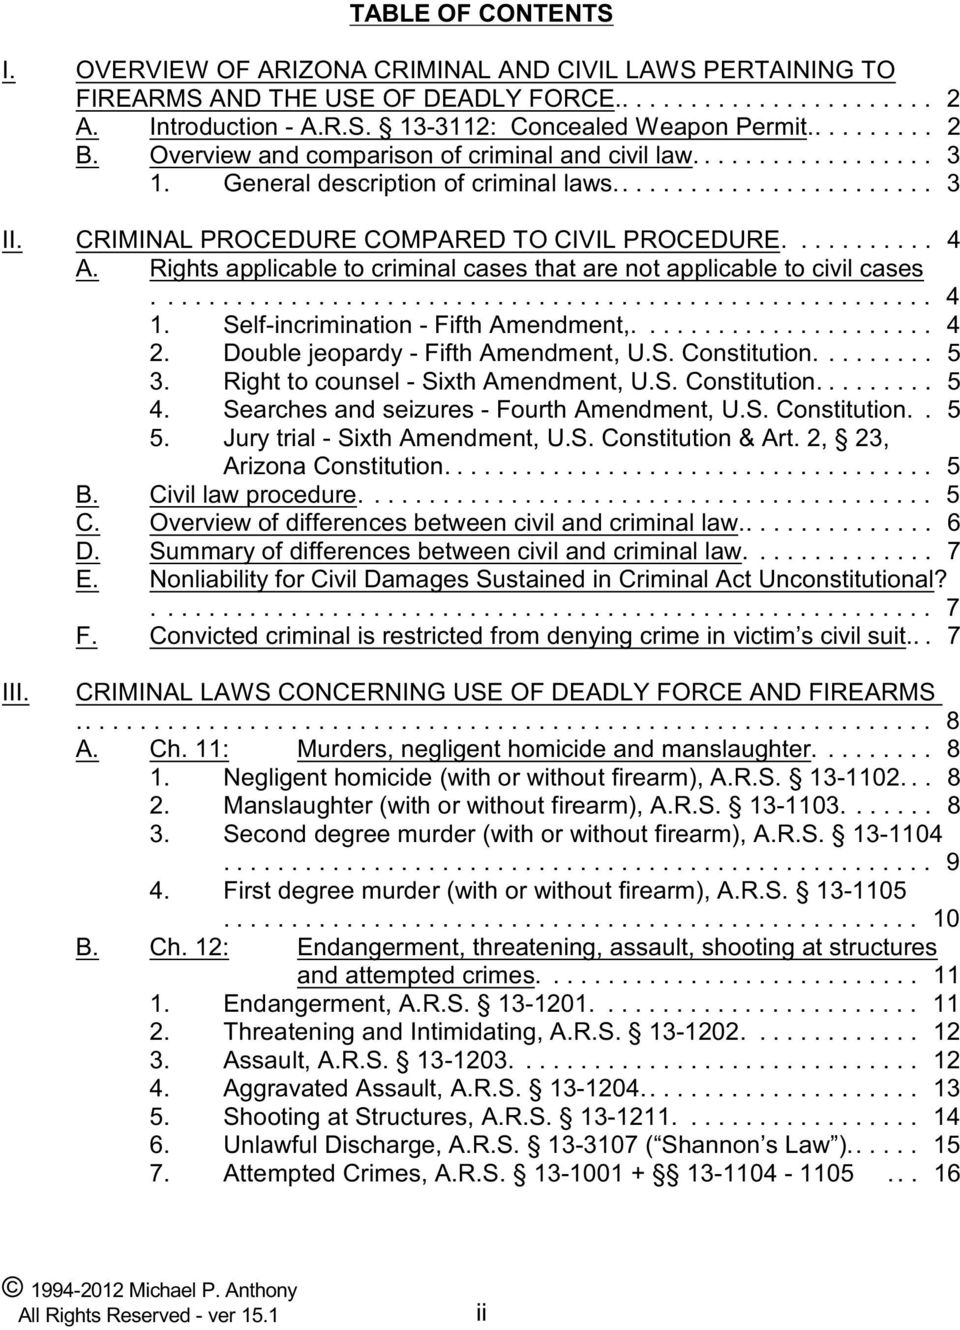 CRIMINAL PROCEDURE COMPARED TO CIVIL PROCEDURE........... 4 A. Rights applicable to criminal cases that are not applicable to civil cases......................................................... 4 1.